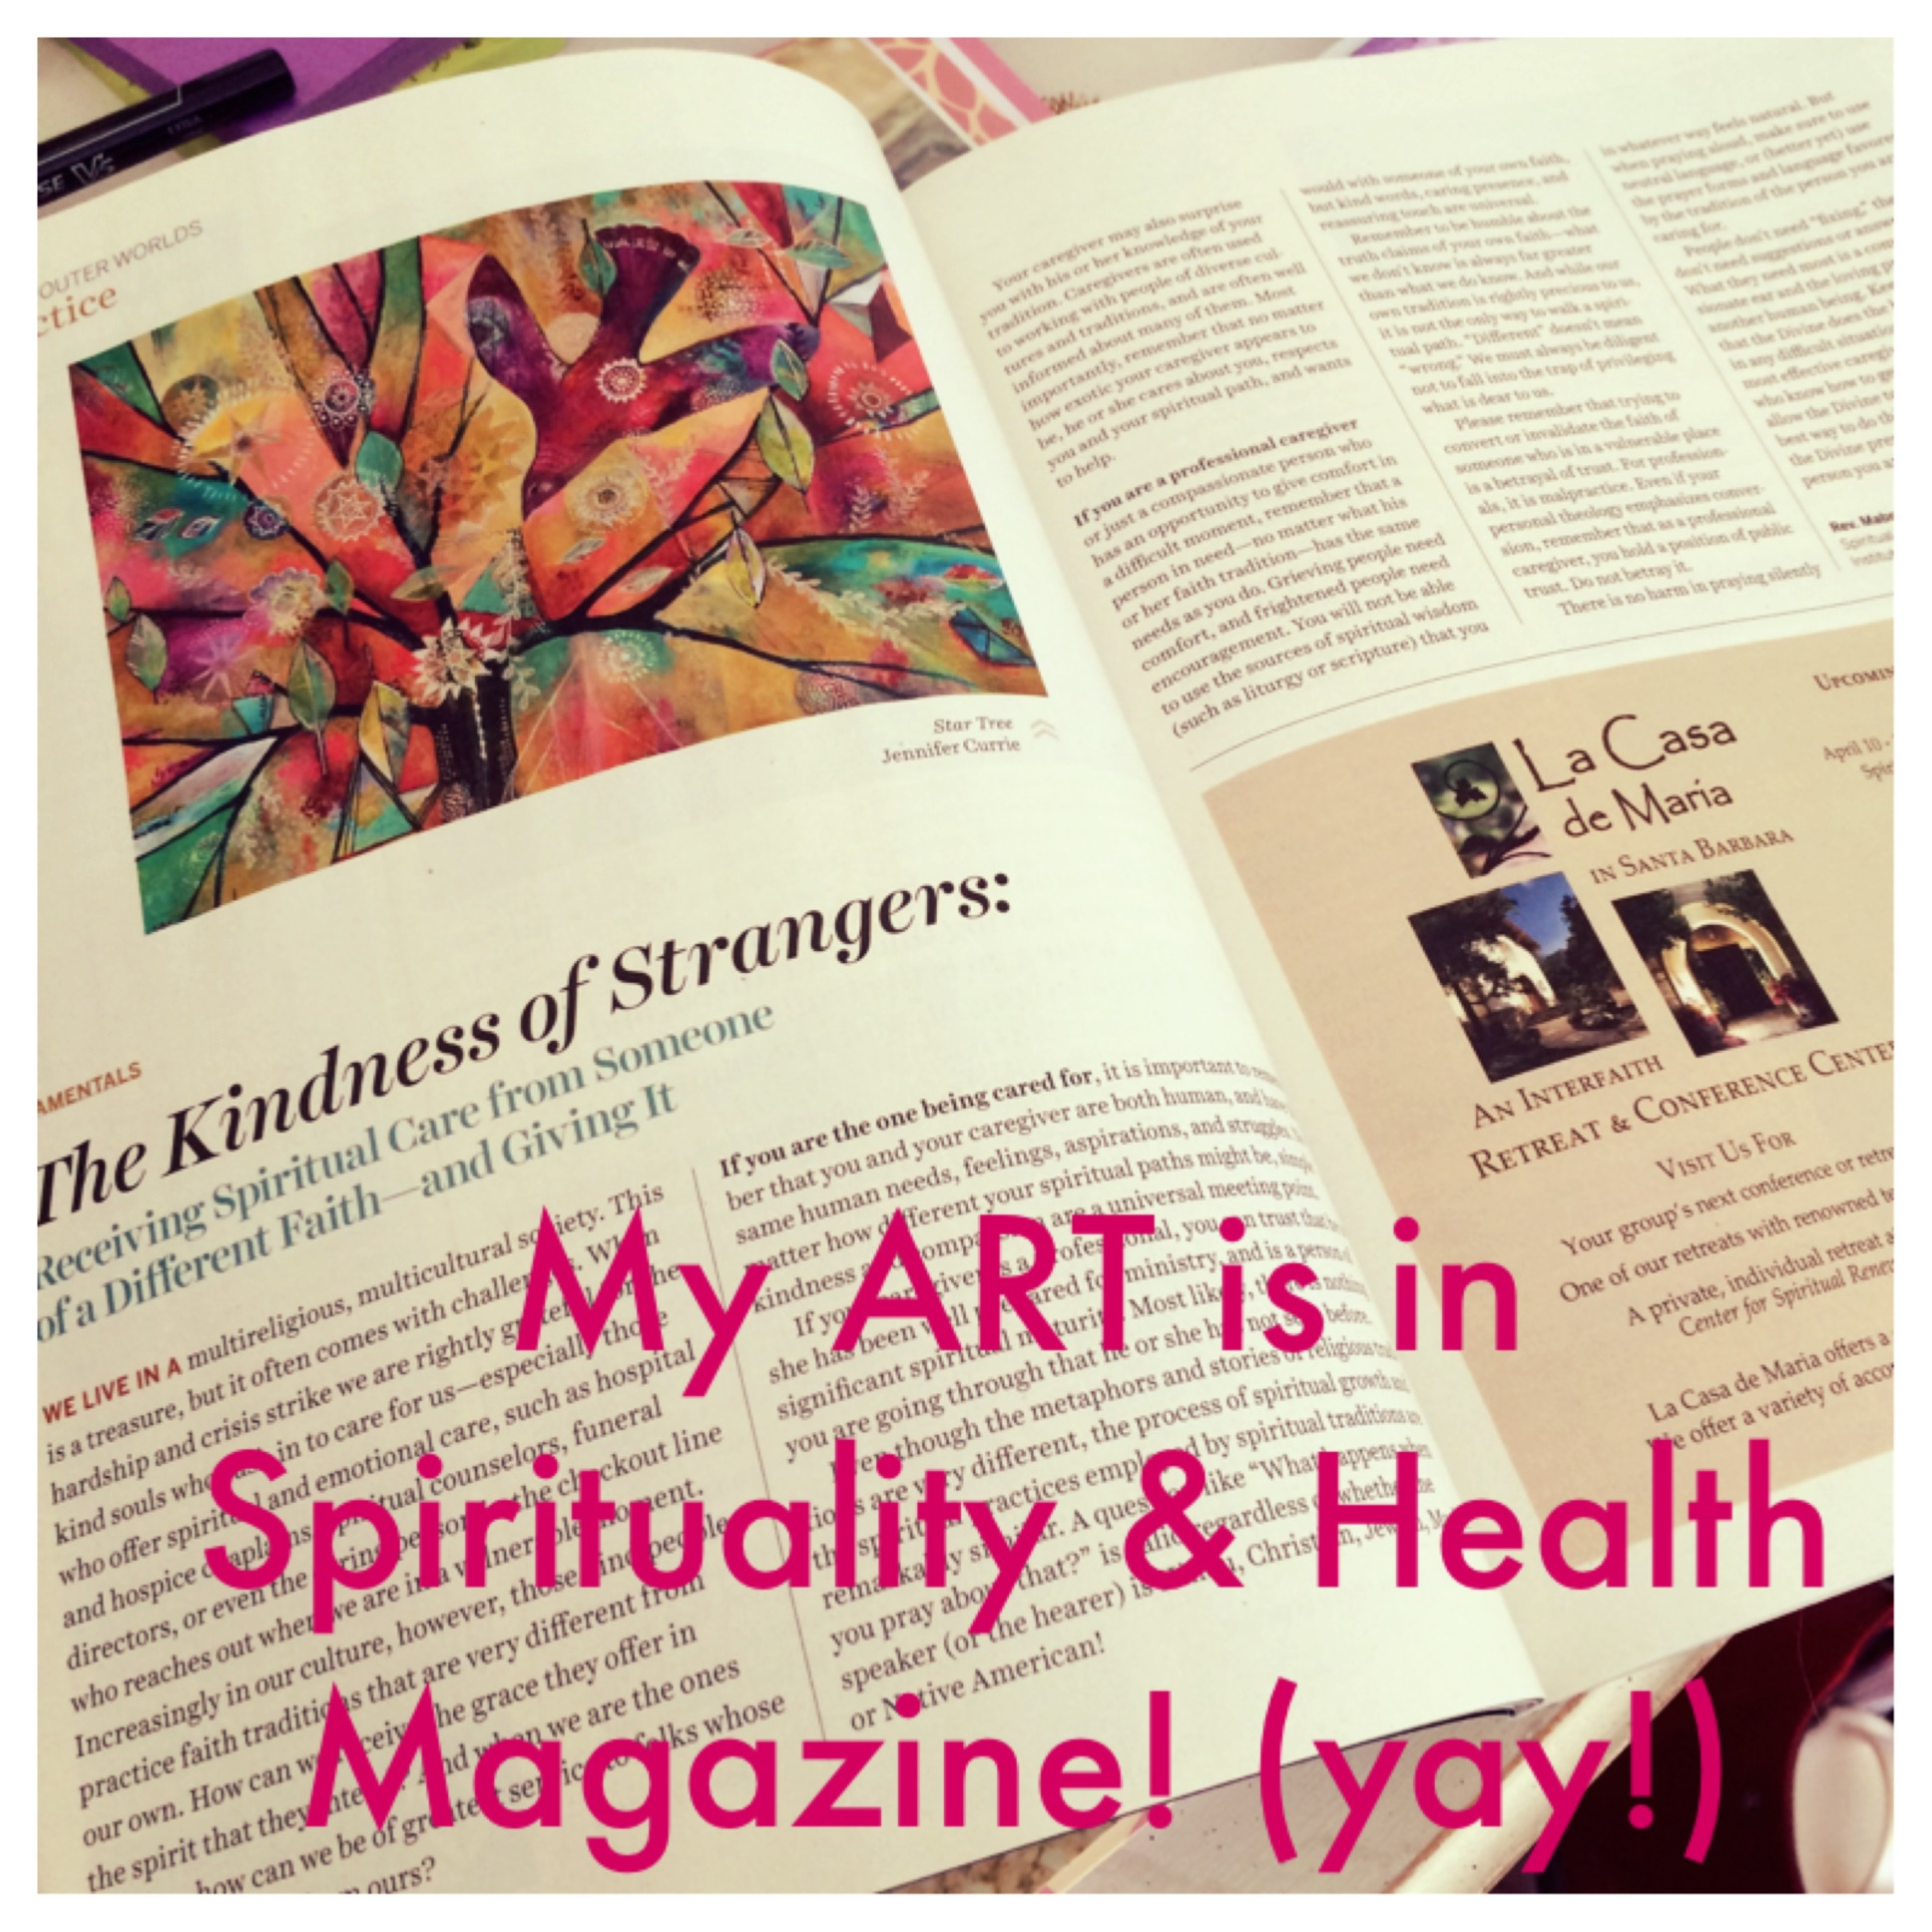 photo of Jennifer Currie's artwork in Spirituality & Health Magazine